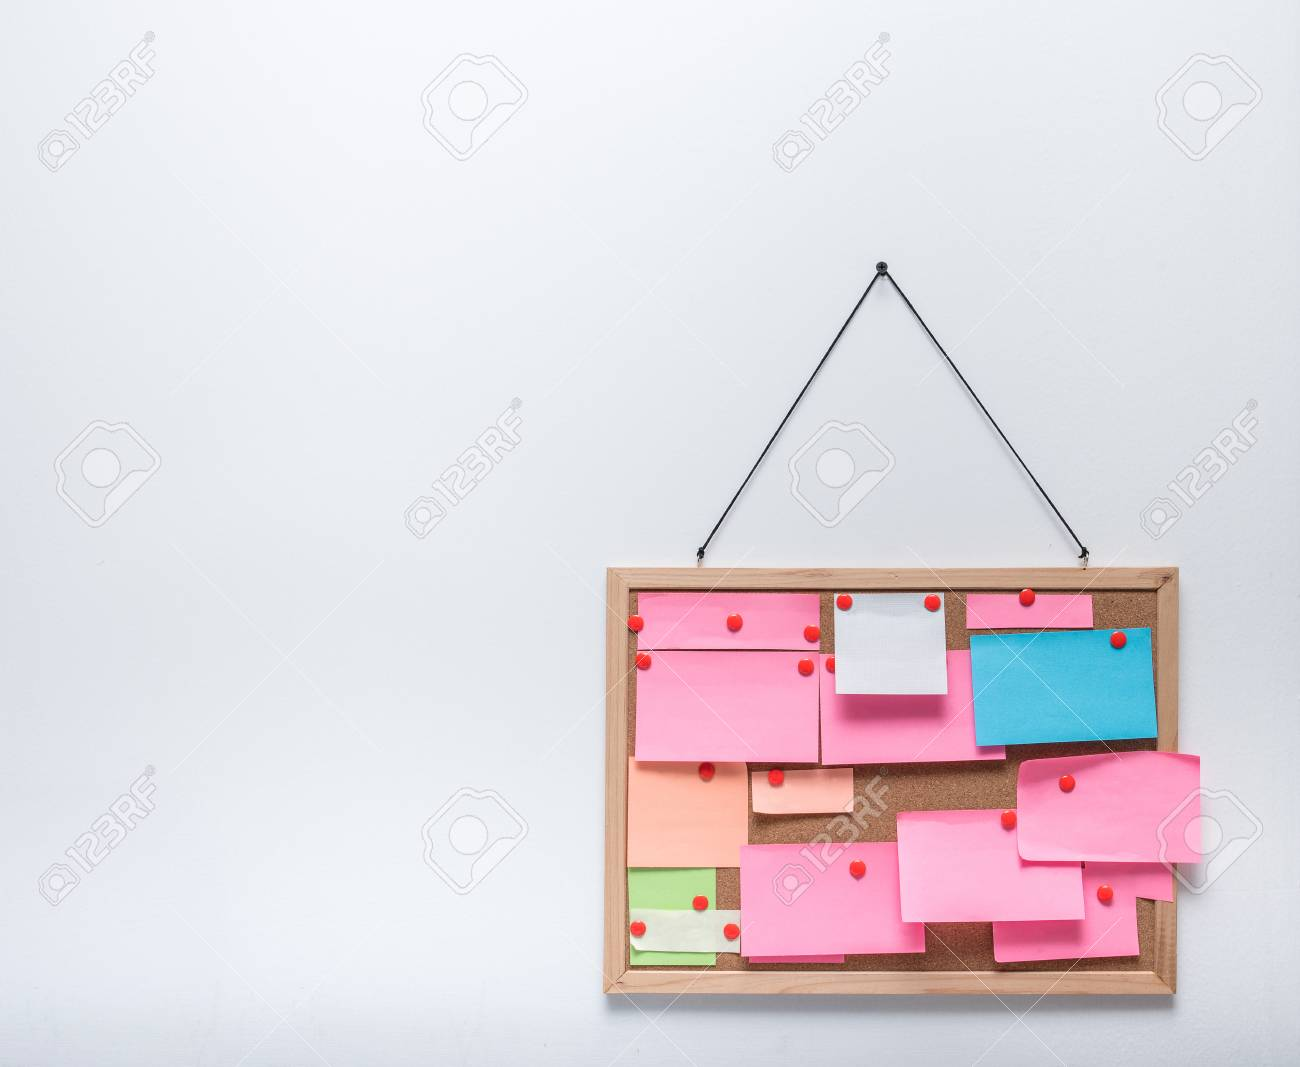 Sticky Notes On Hanging Cork Bulletin Board On White Wall Background